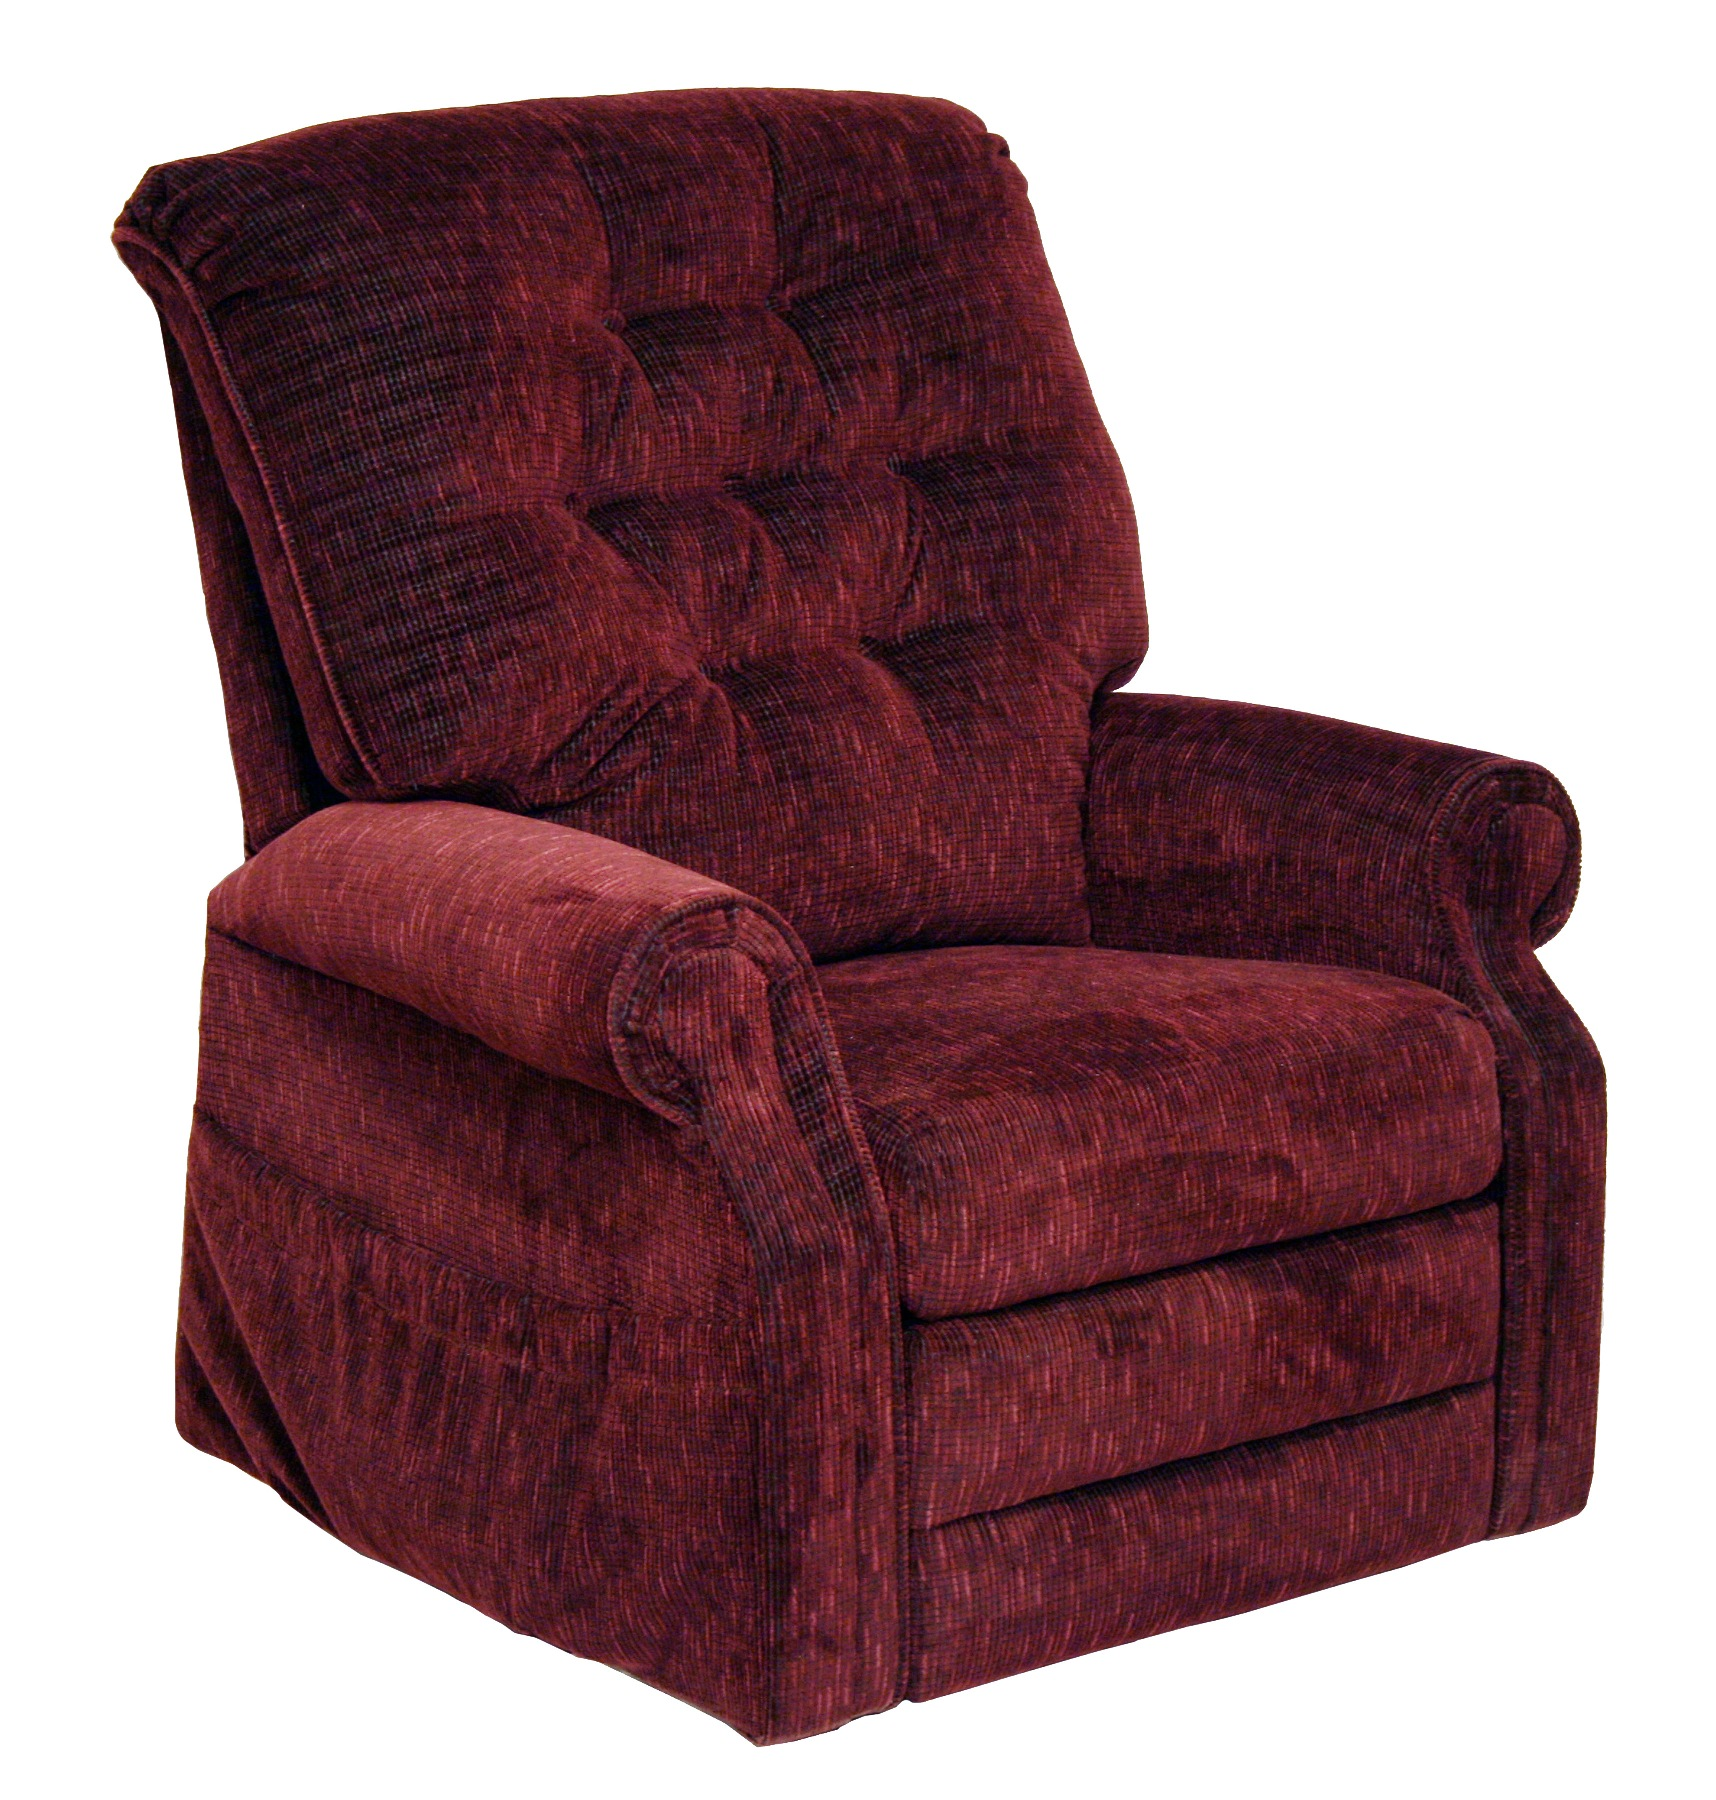 Catnapper Chair Catnapper Patriot Power Lift Recliner Vino